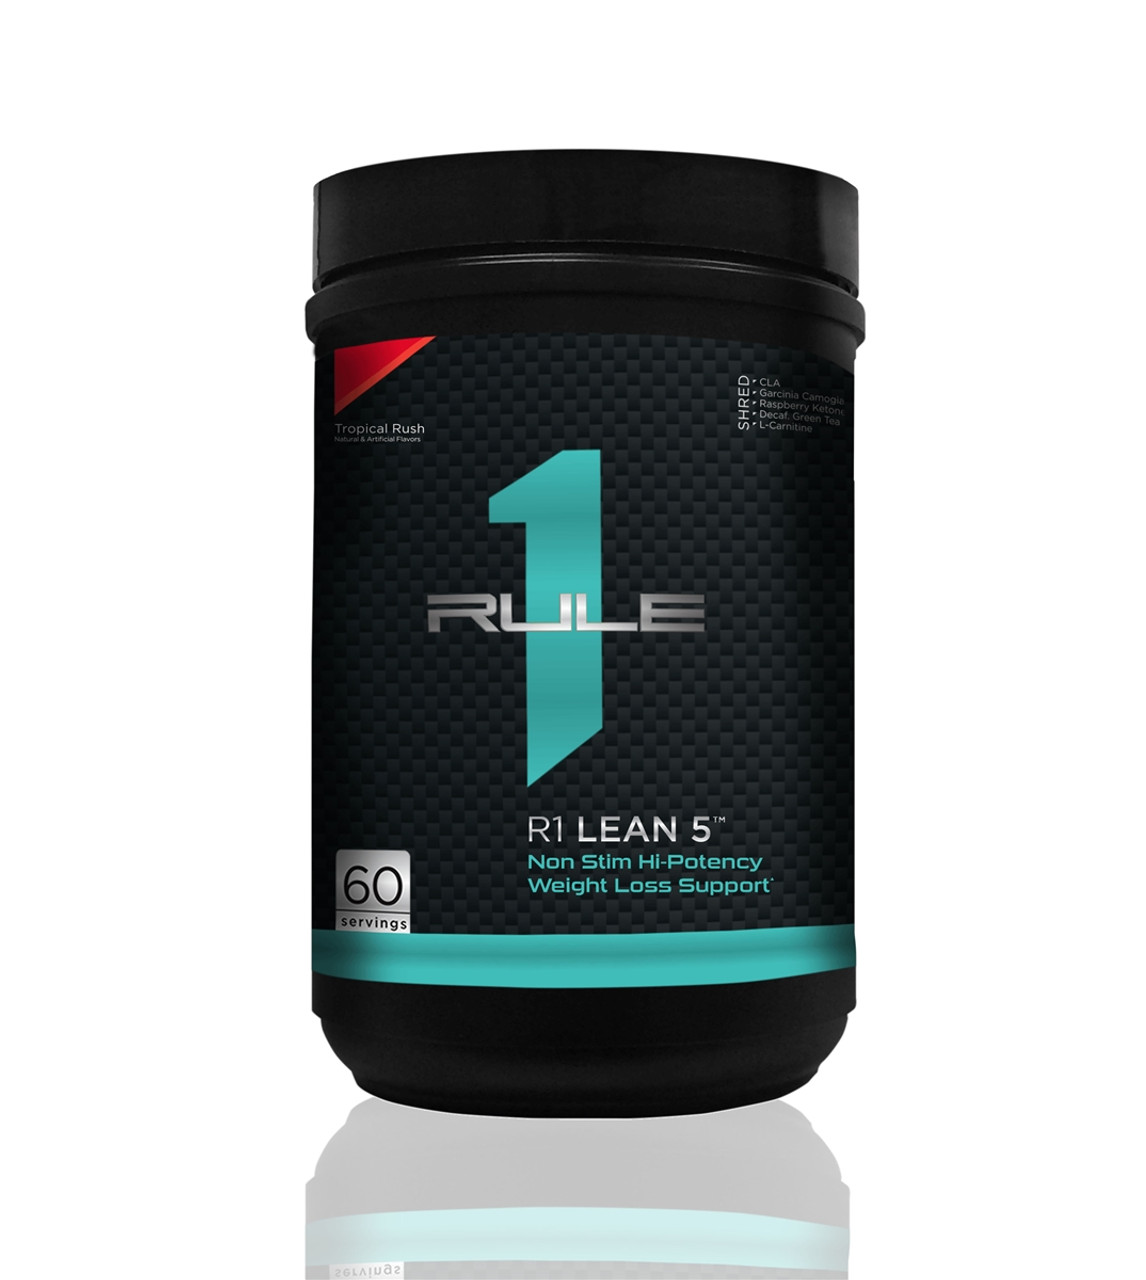 Clearance R1 Lean 5 by Rule One Proteins 60sv